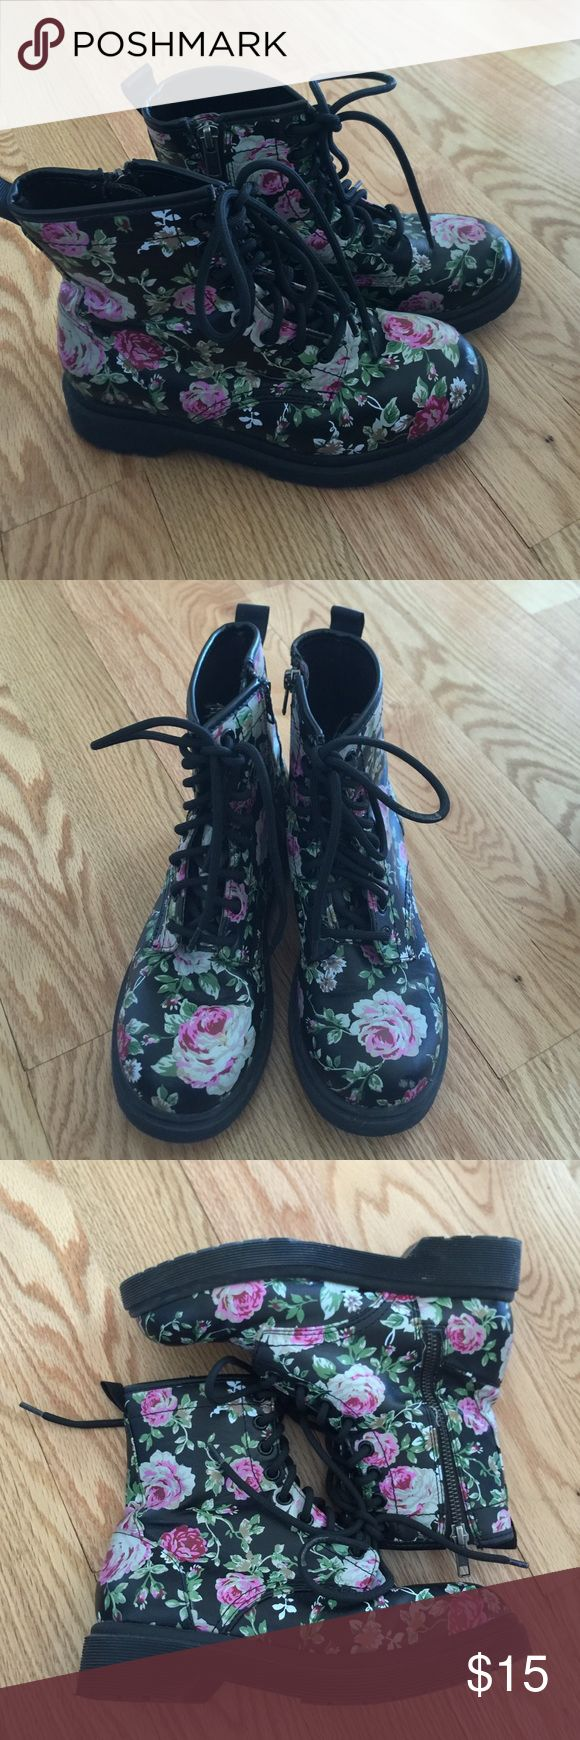 Floral Boots Good Used Condition. Doc Maarten style, these are NOT Doc Maartens though! Black with pink floral design. Any questions, please ask! Mossimo Supply Co Shoes Combat & Moto Boots